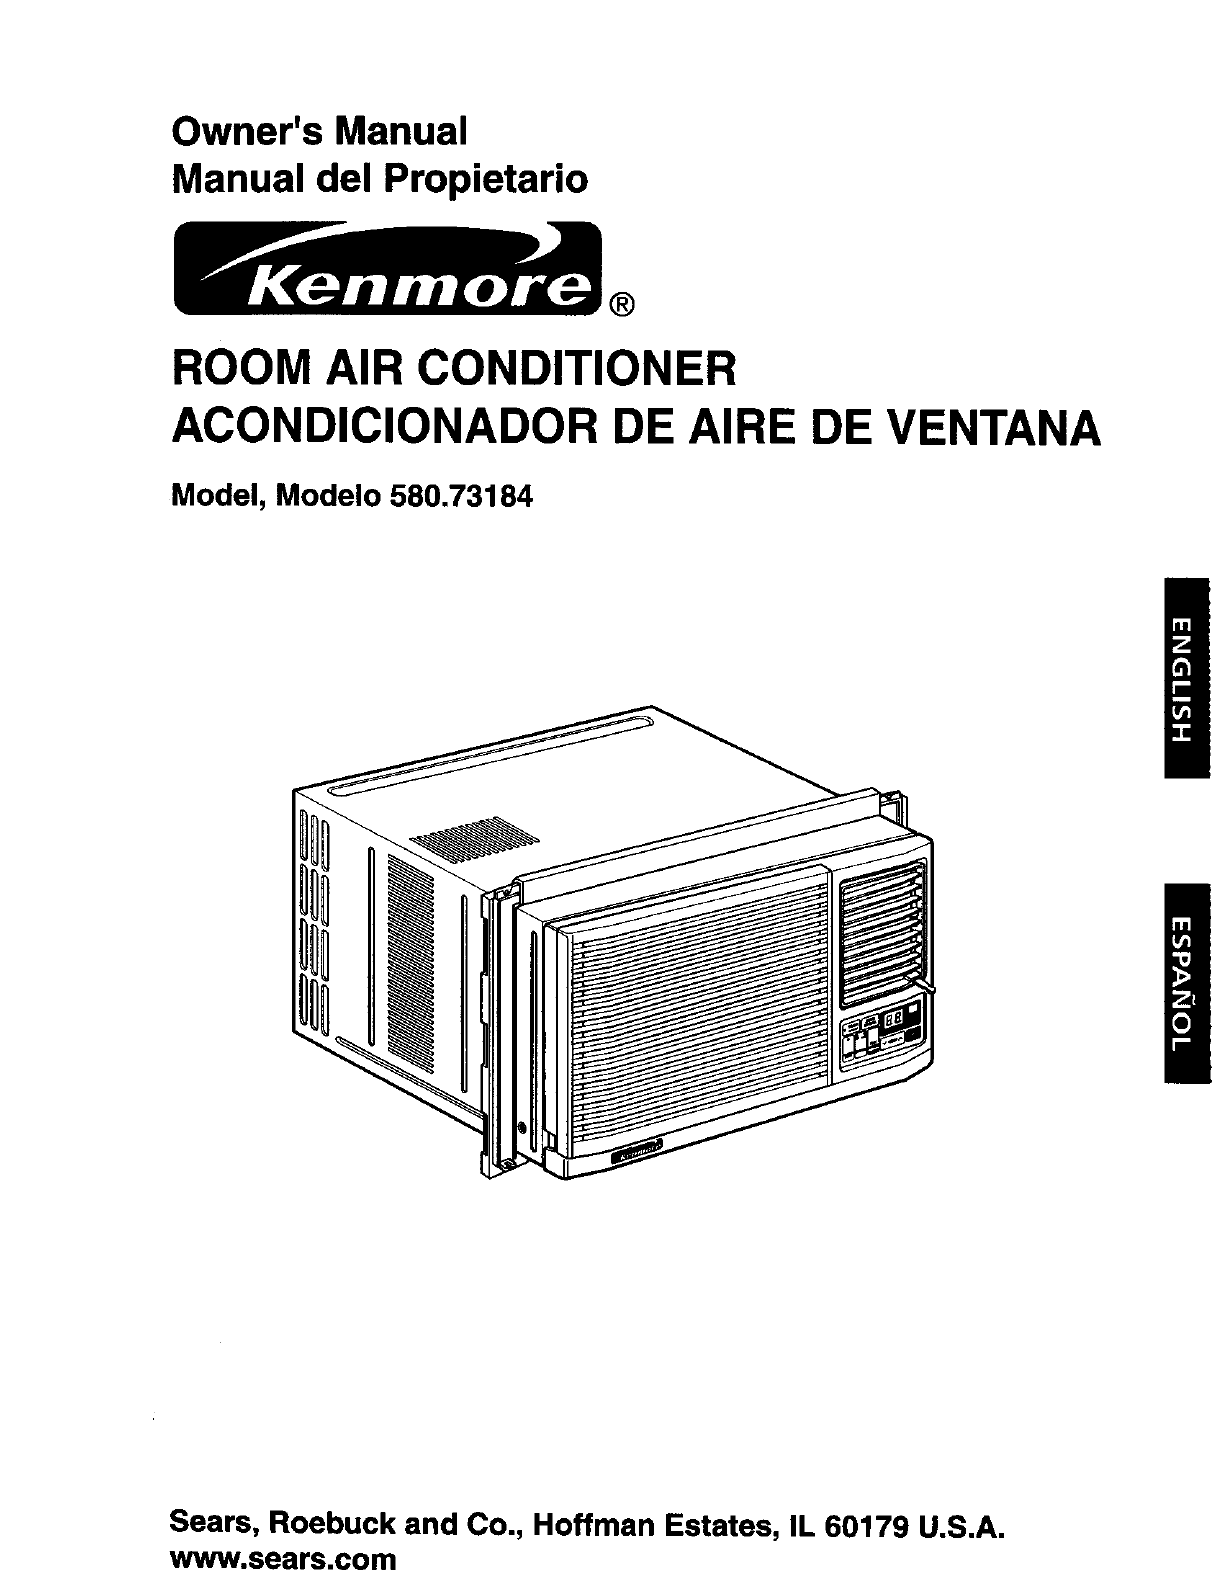 Kenmore 58073184300 User Manual Air Conditioner Manuals And Guides Ceiling Fan Wiring Diagram Sears Roebuck L0306046